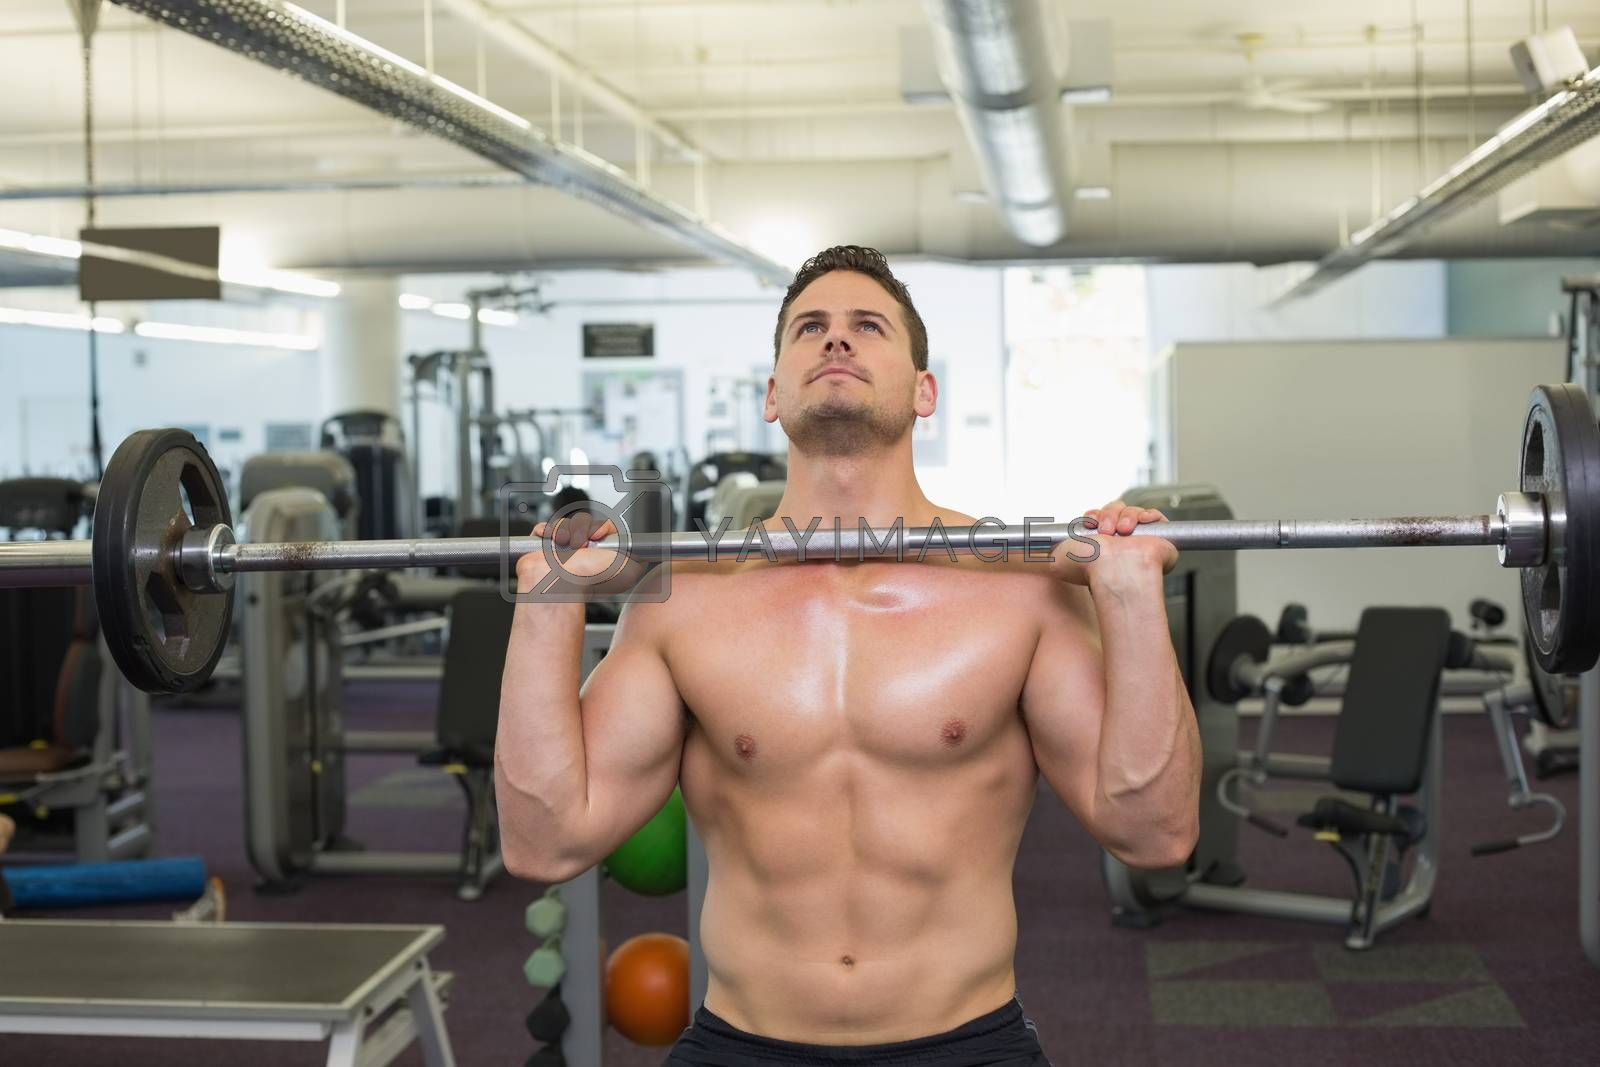 Shirtless bodybuilder lifting heavy barbell weight at the gym